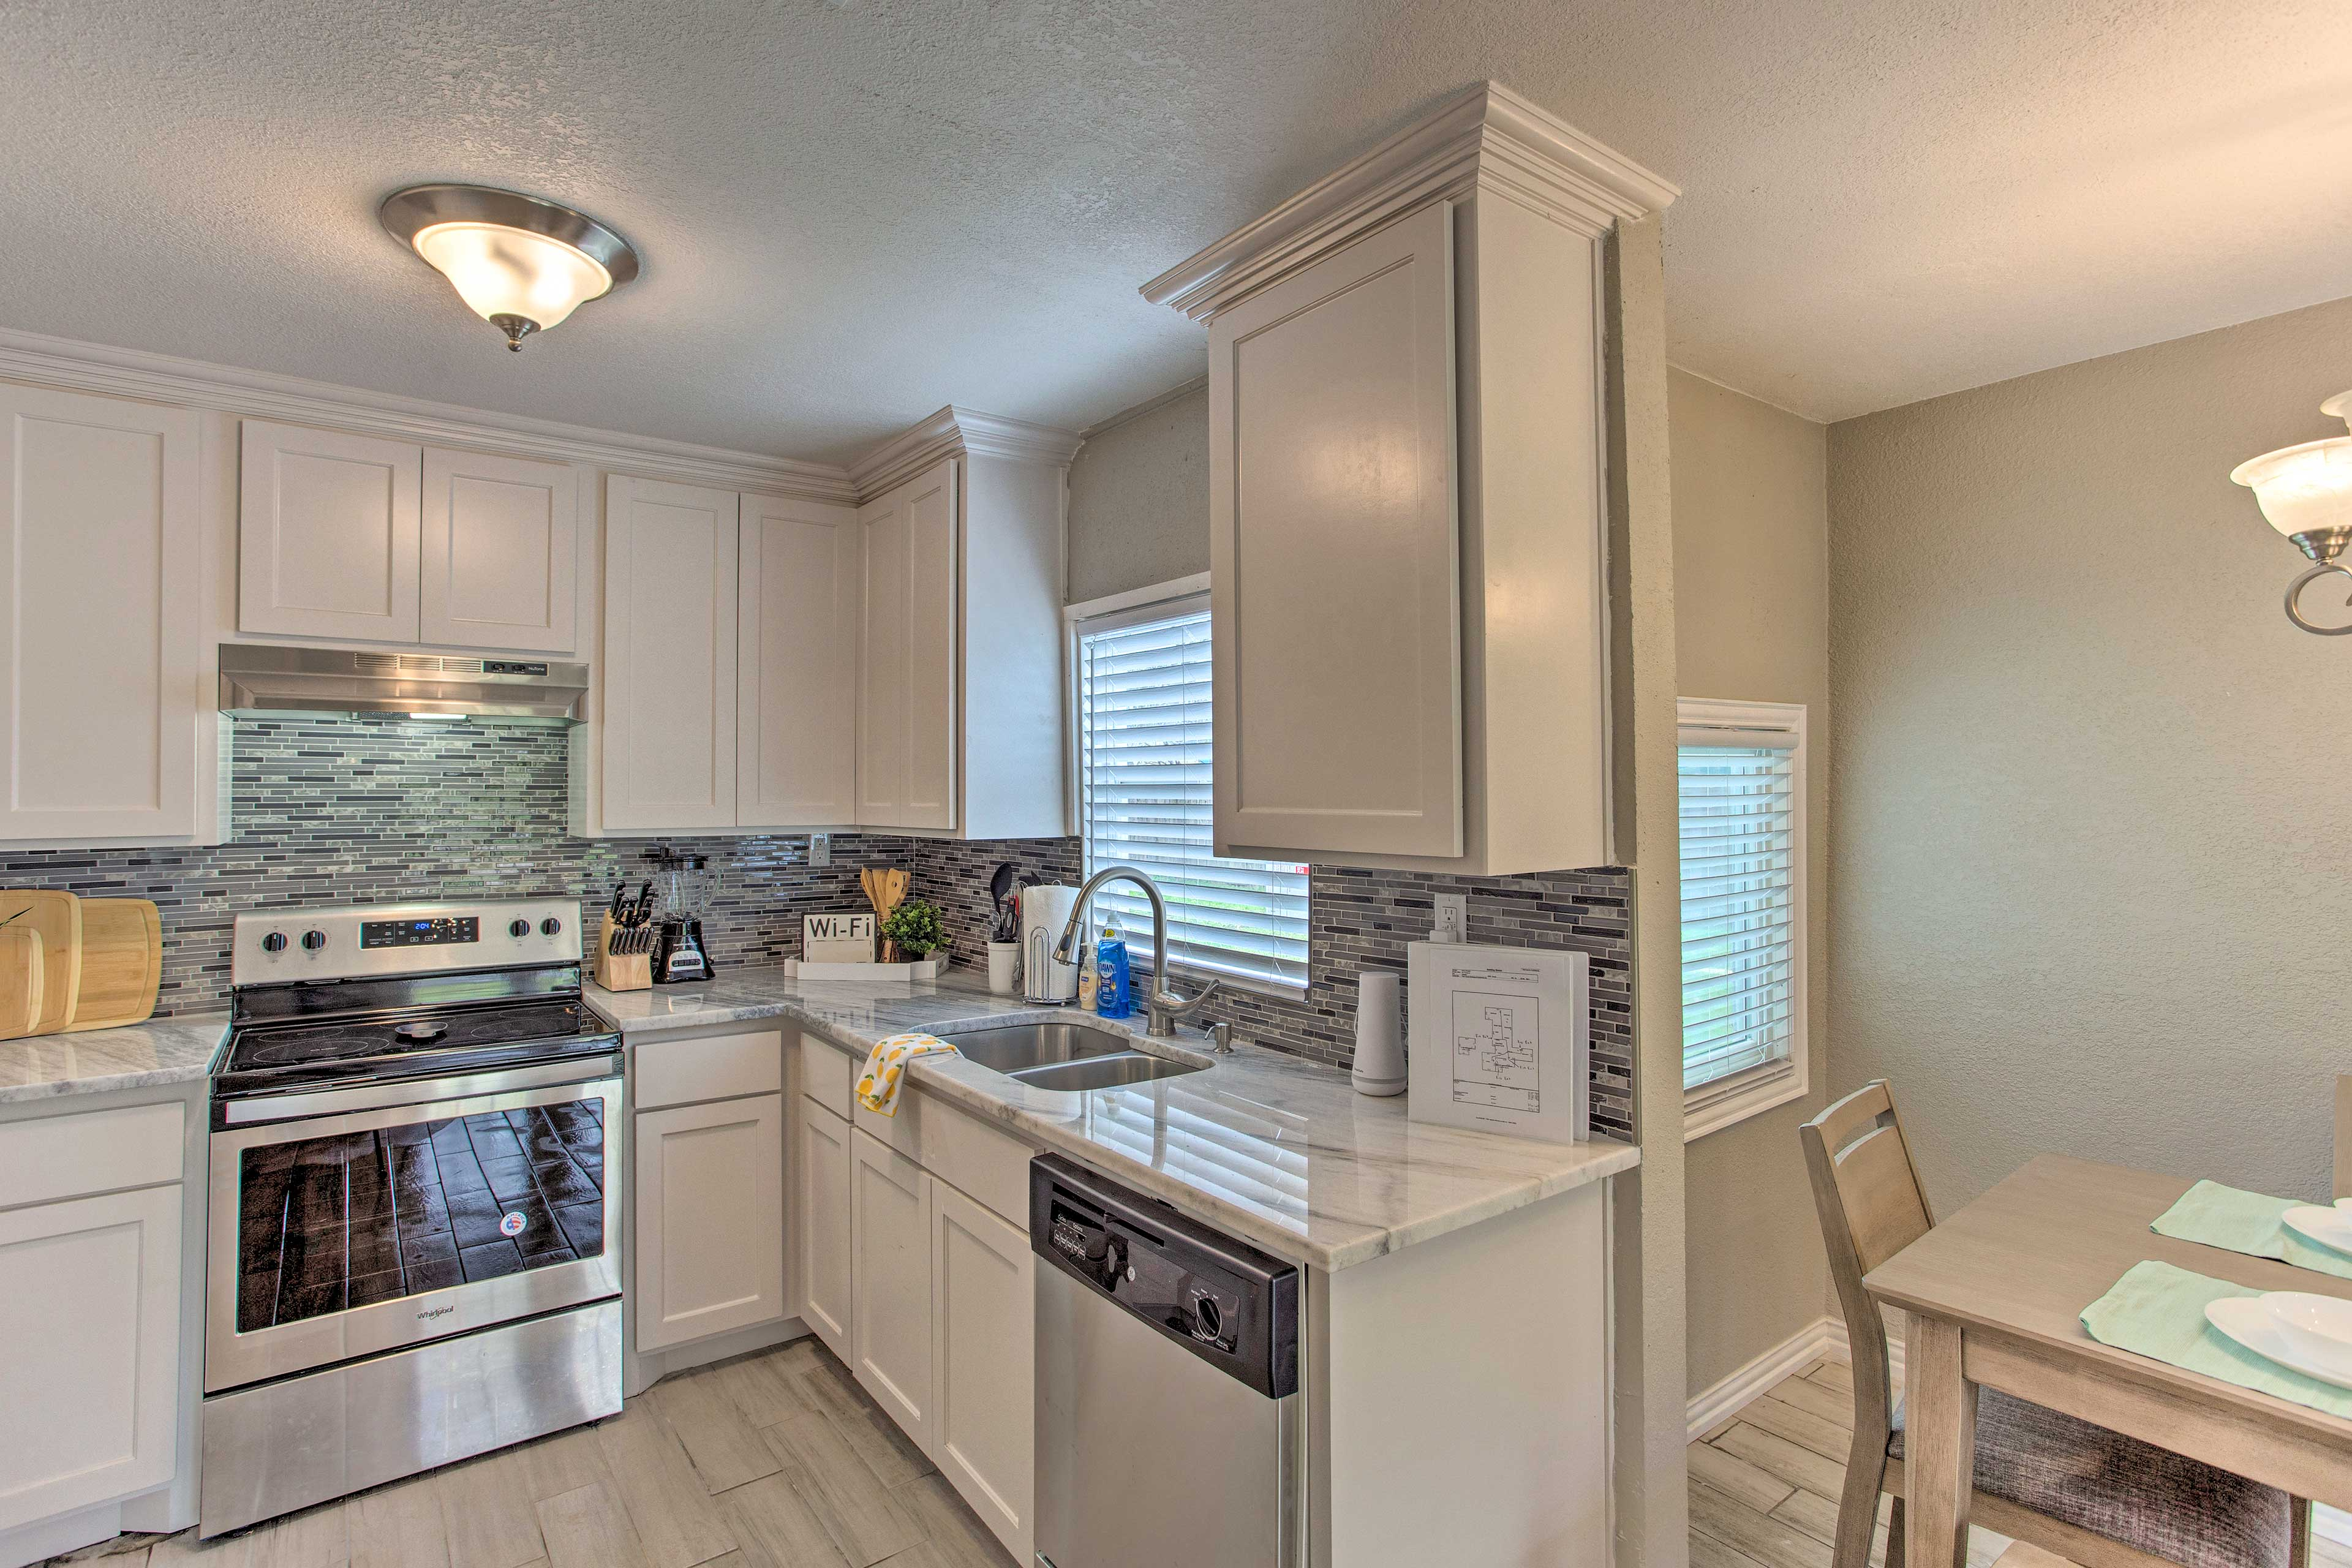 Cook your favorite recipes in this fully equipped kitchen.